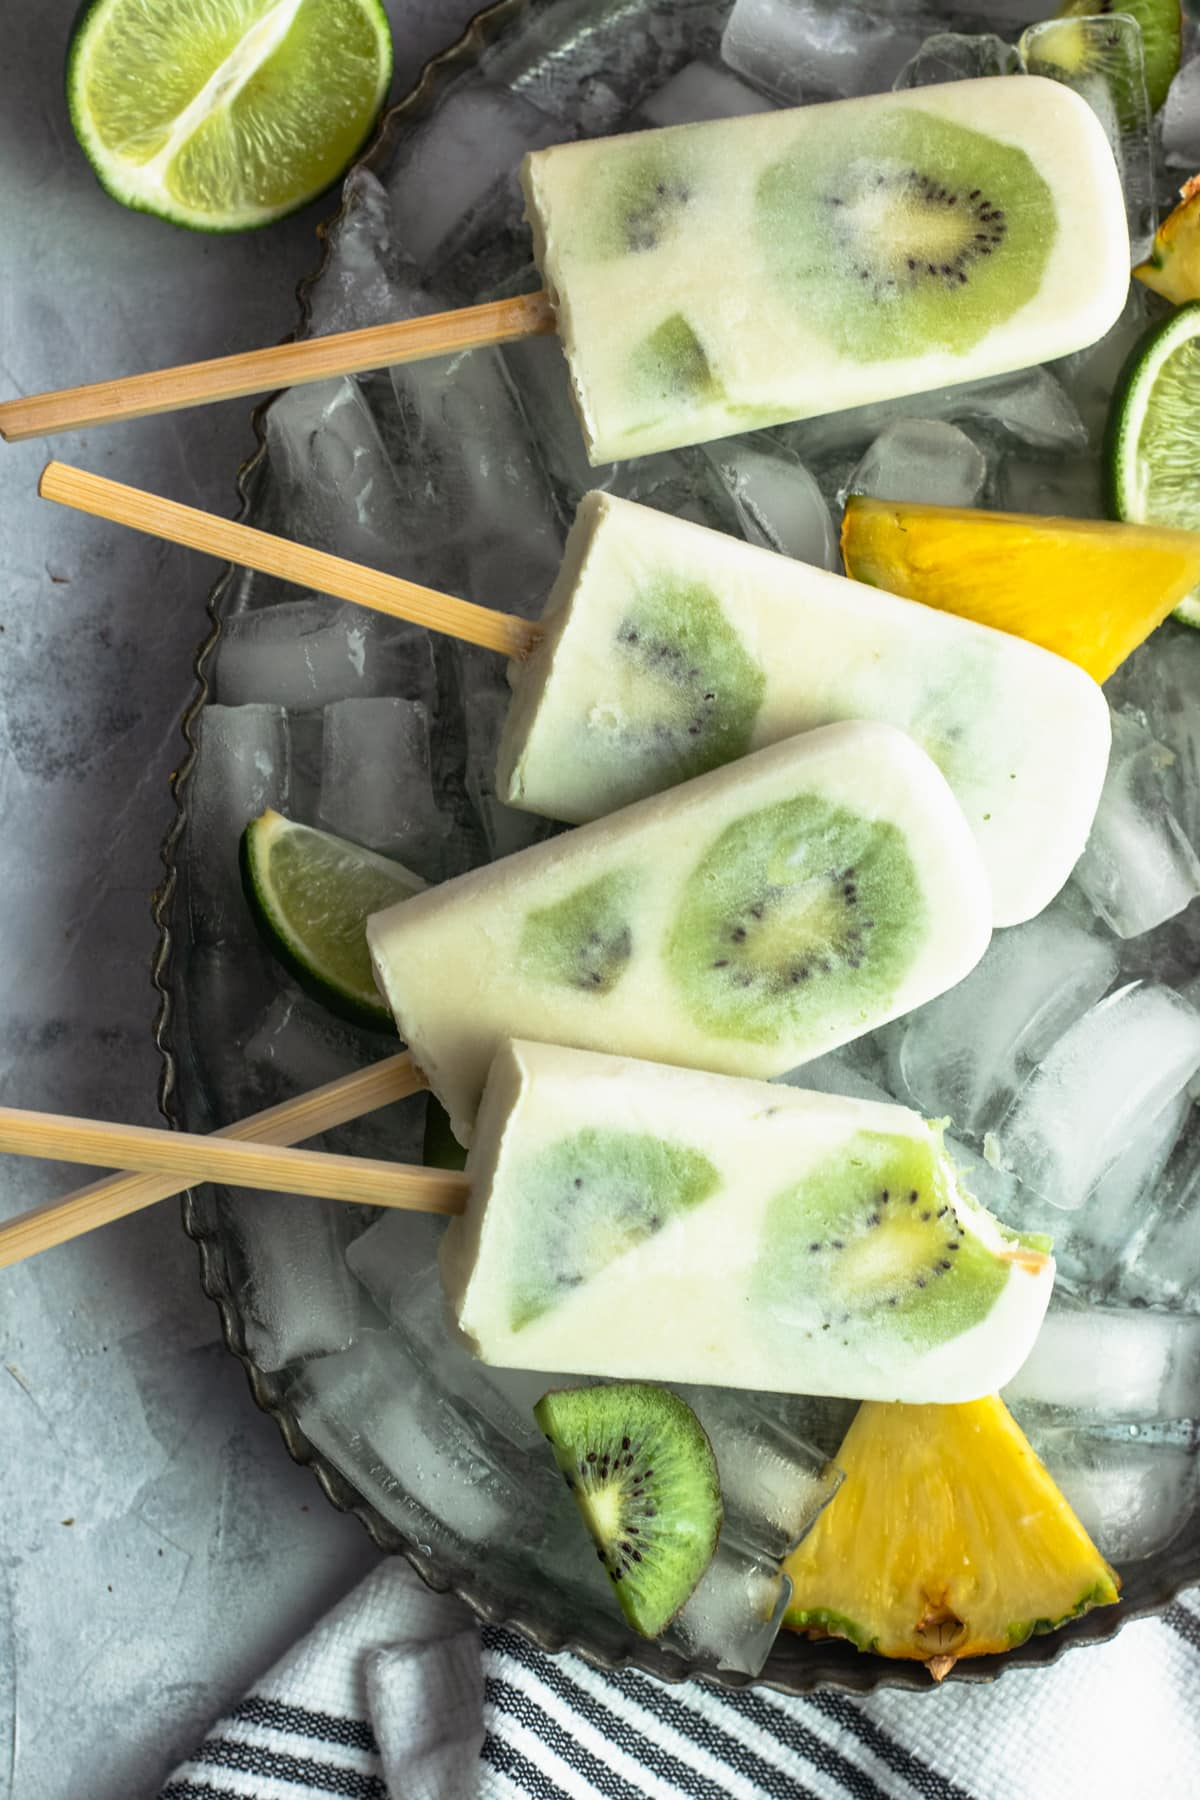 Whole 30 Tropical Popsicles Recipe Bite by top Houston lifestyle blogger Ashley Rose of Sugar & Cloth